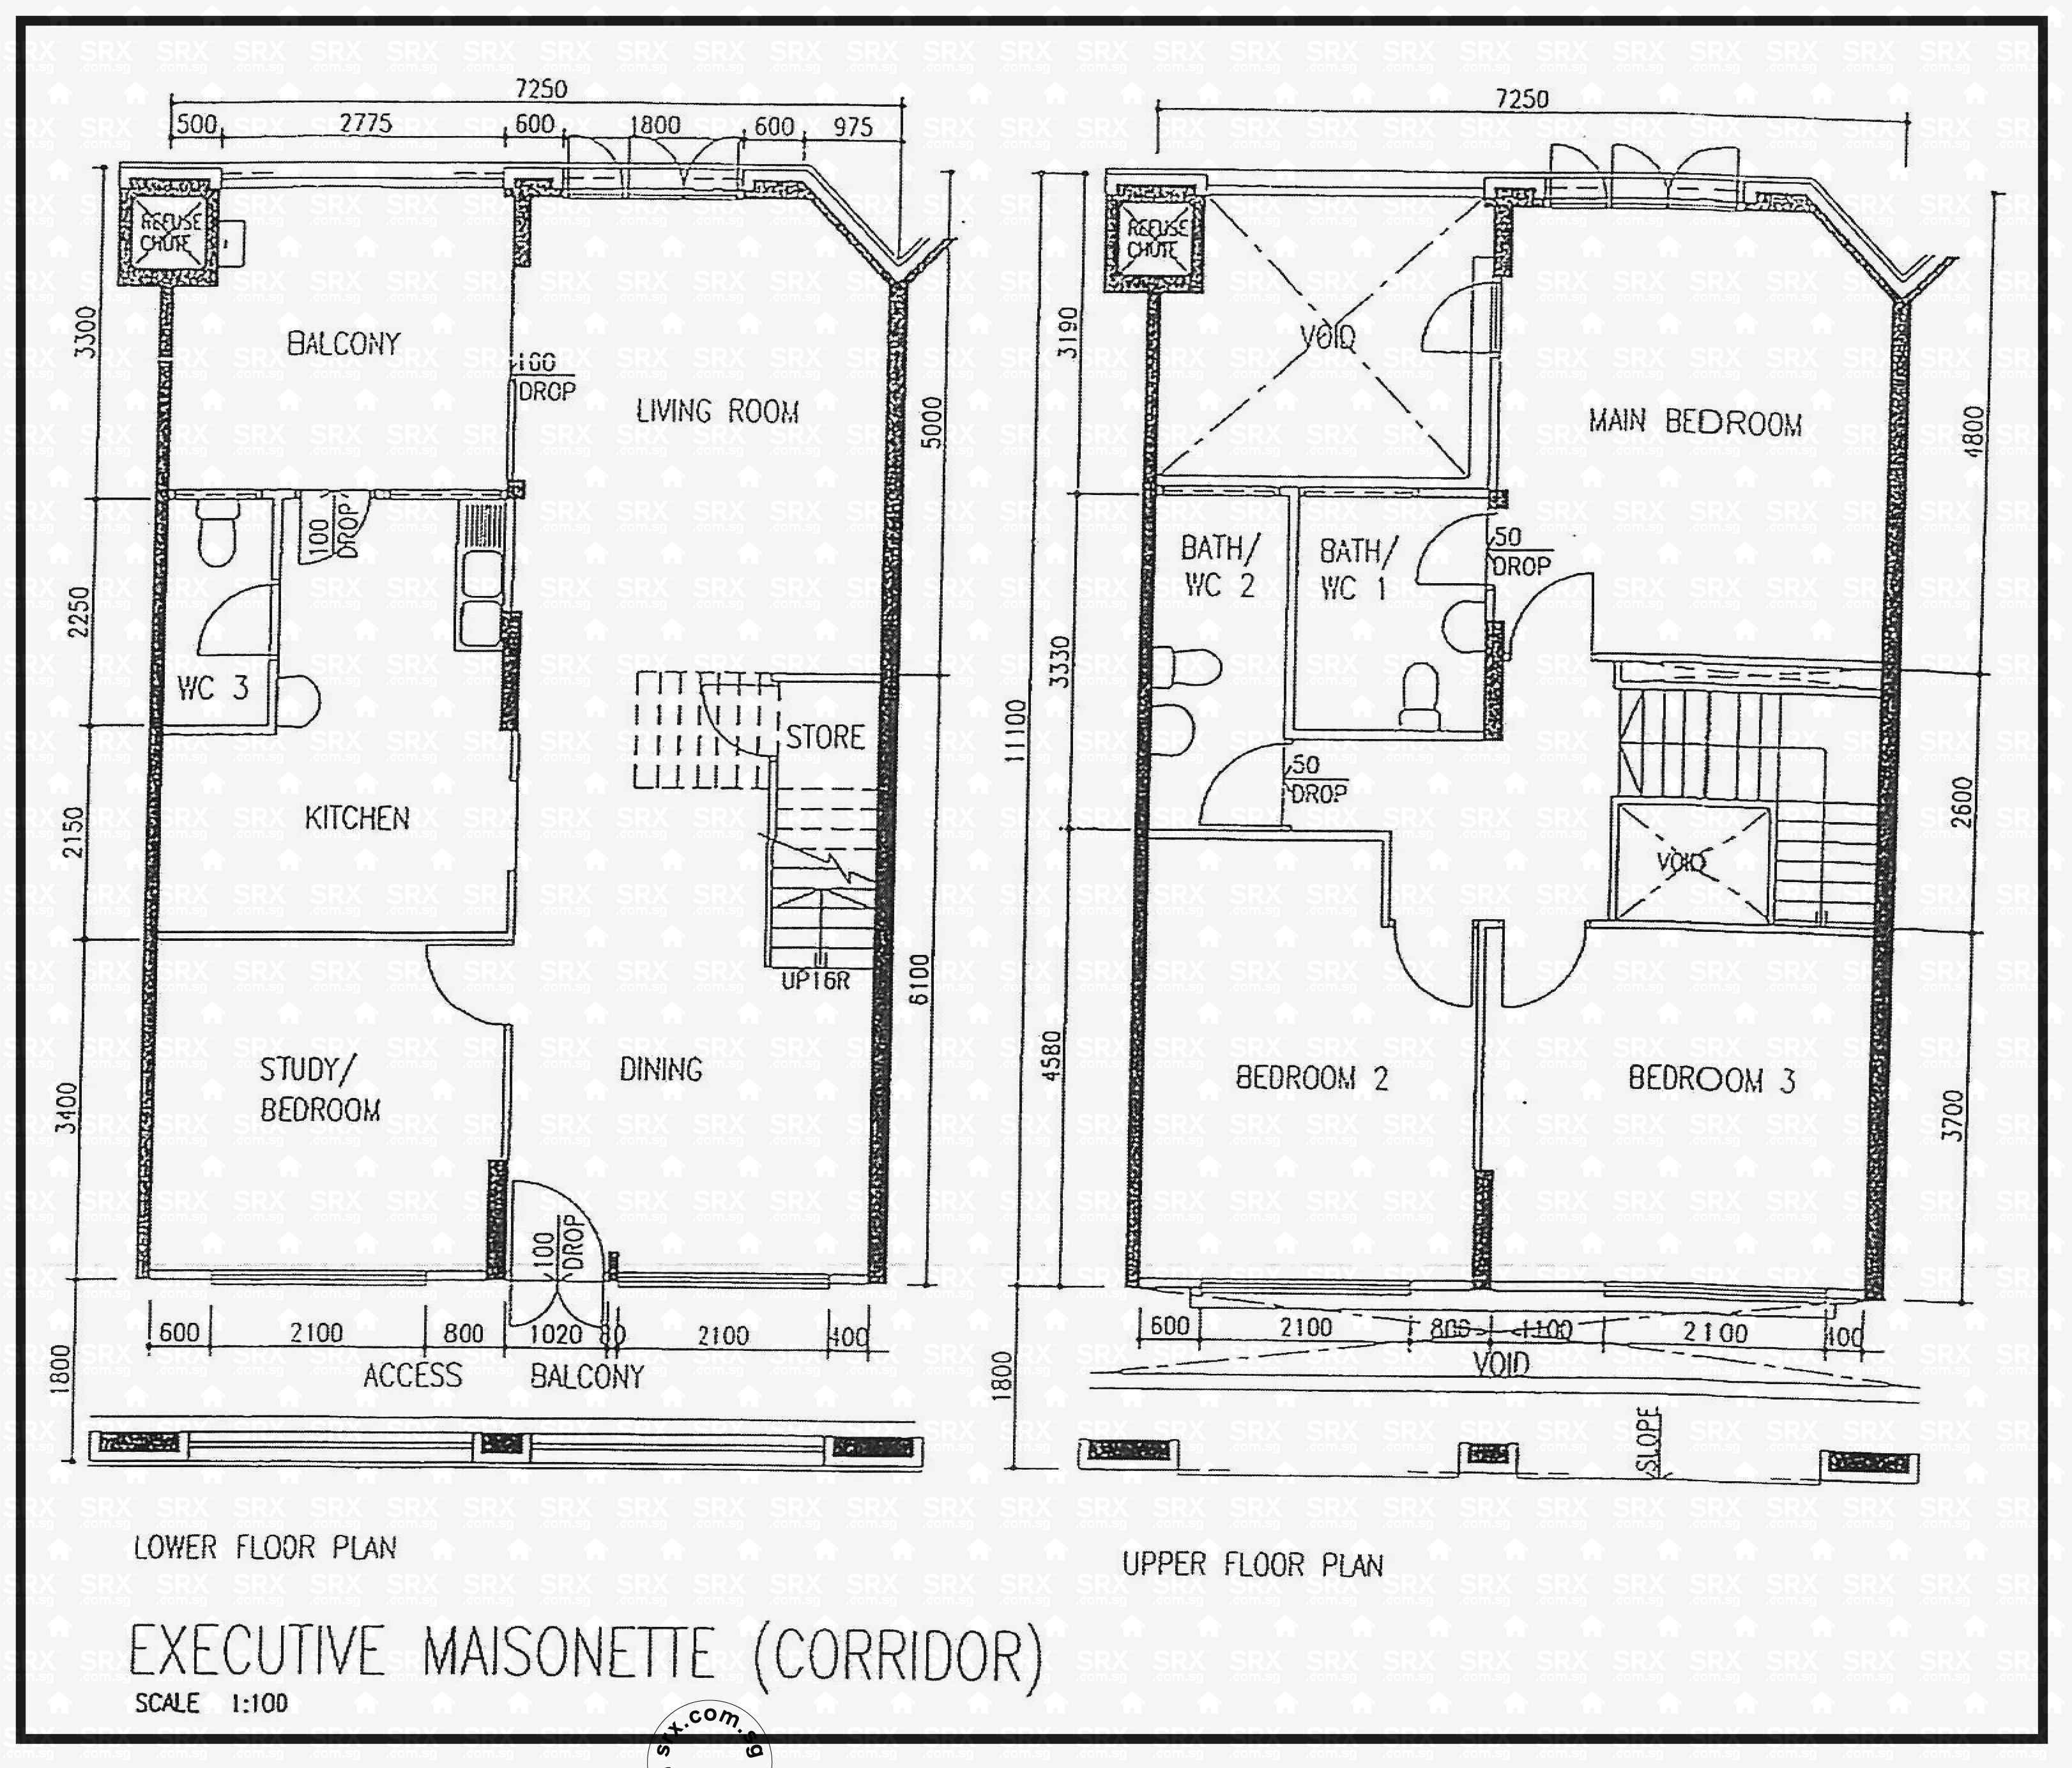 Floor Plans For Hougang Street 21 Hdb Details Srx Property